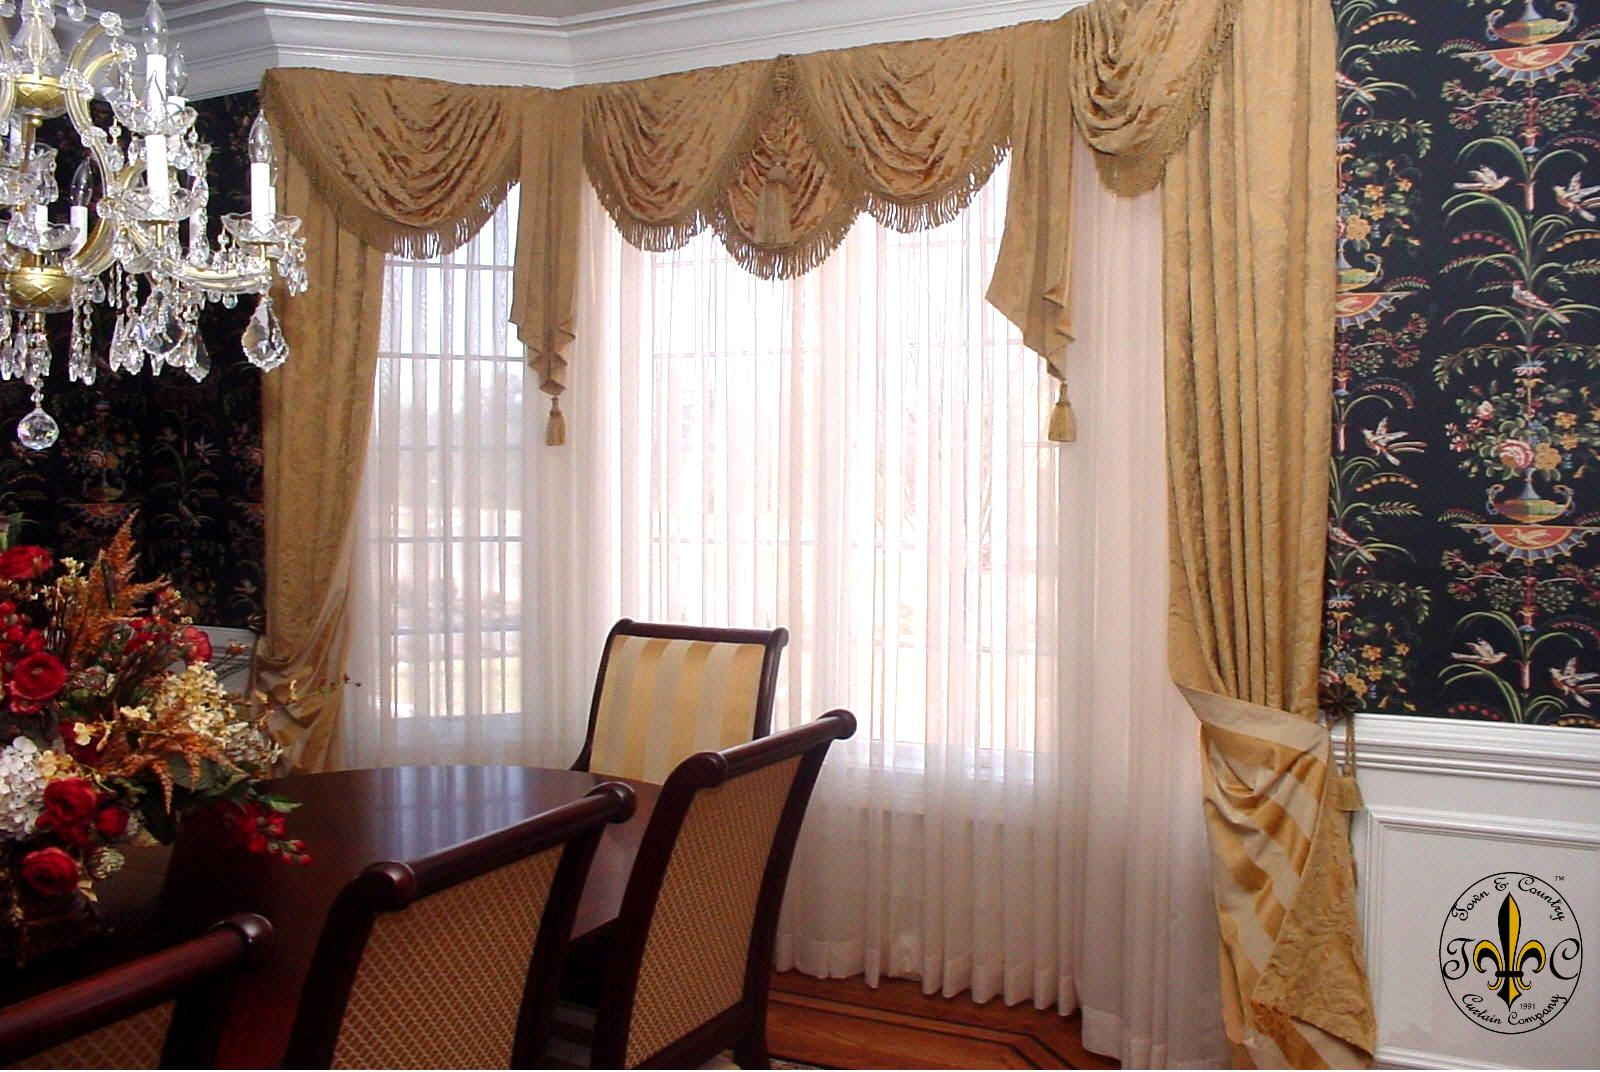 Curtains Designs For Living Room Unique Beautiul Design Curtain With Soft Window Treatments Design Ideas Inspiration Design